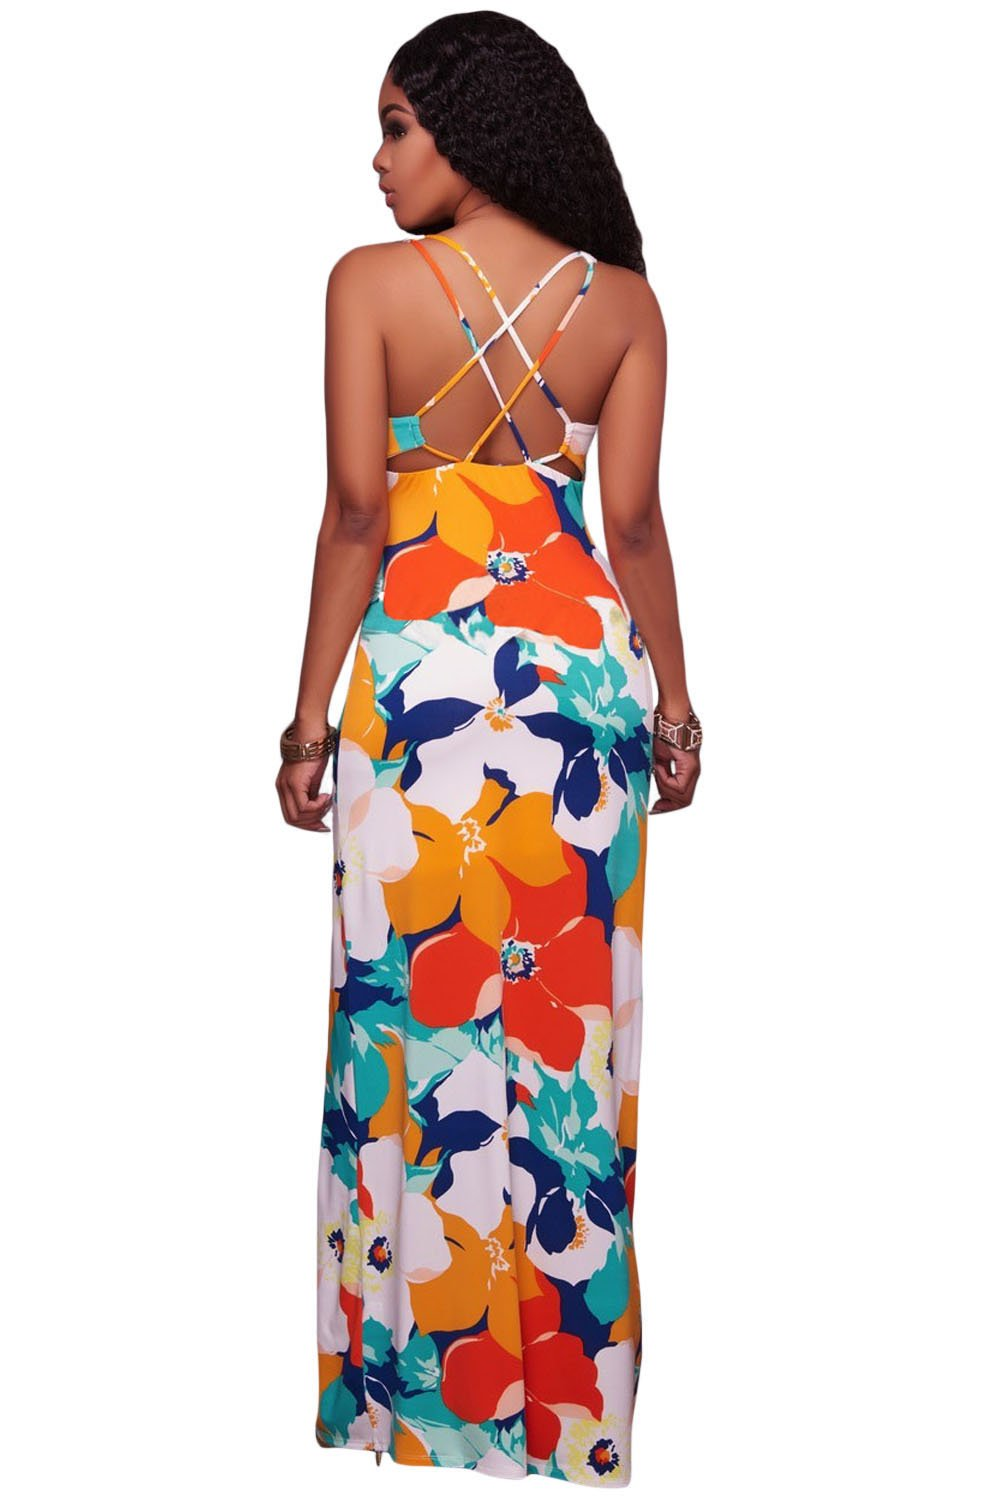 Orangish Multi-color Floral Print Crisscross Back Maxi Dress